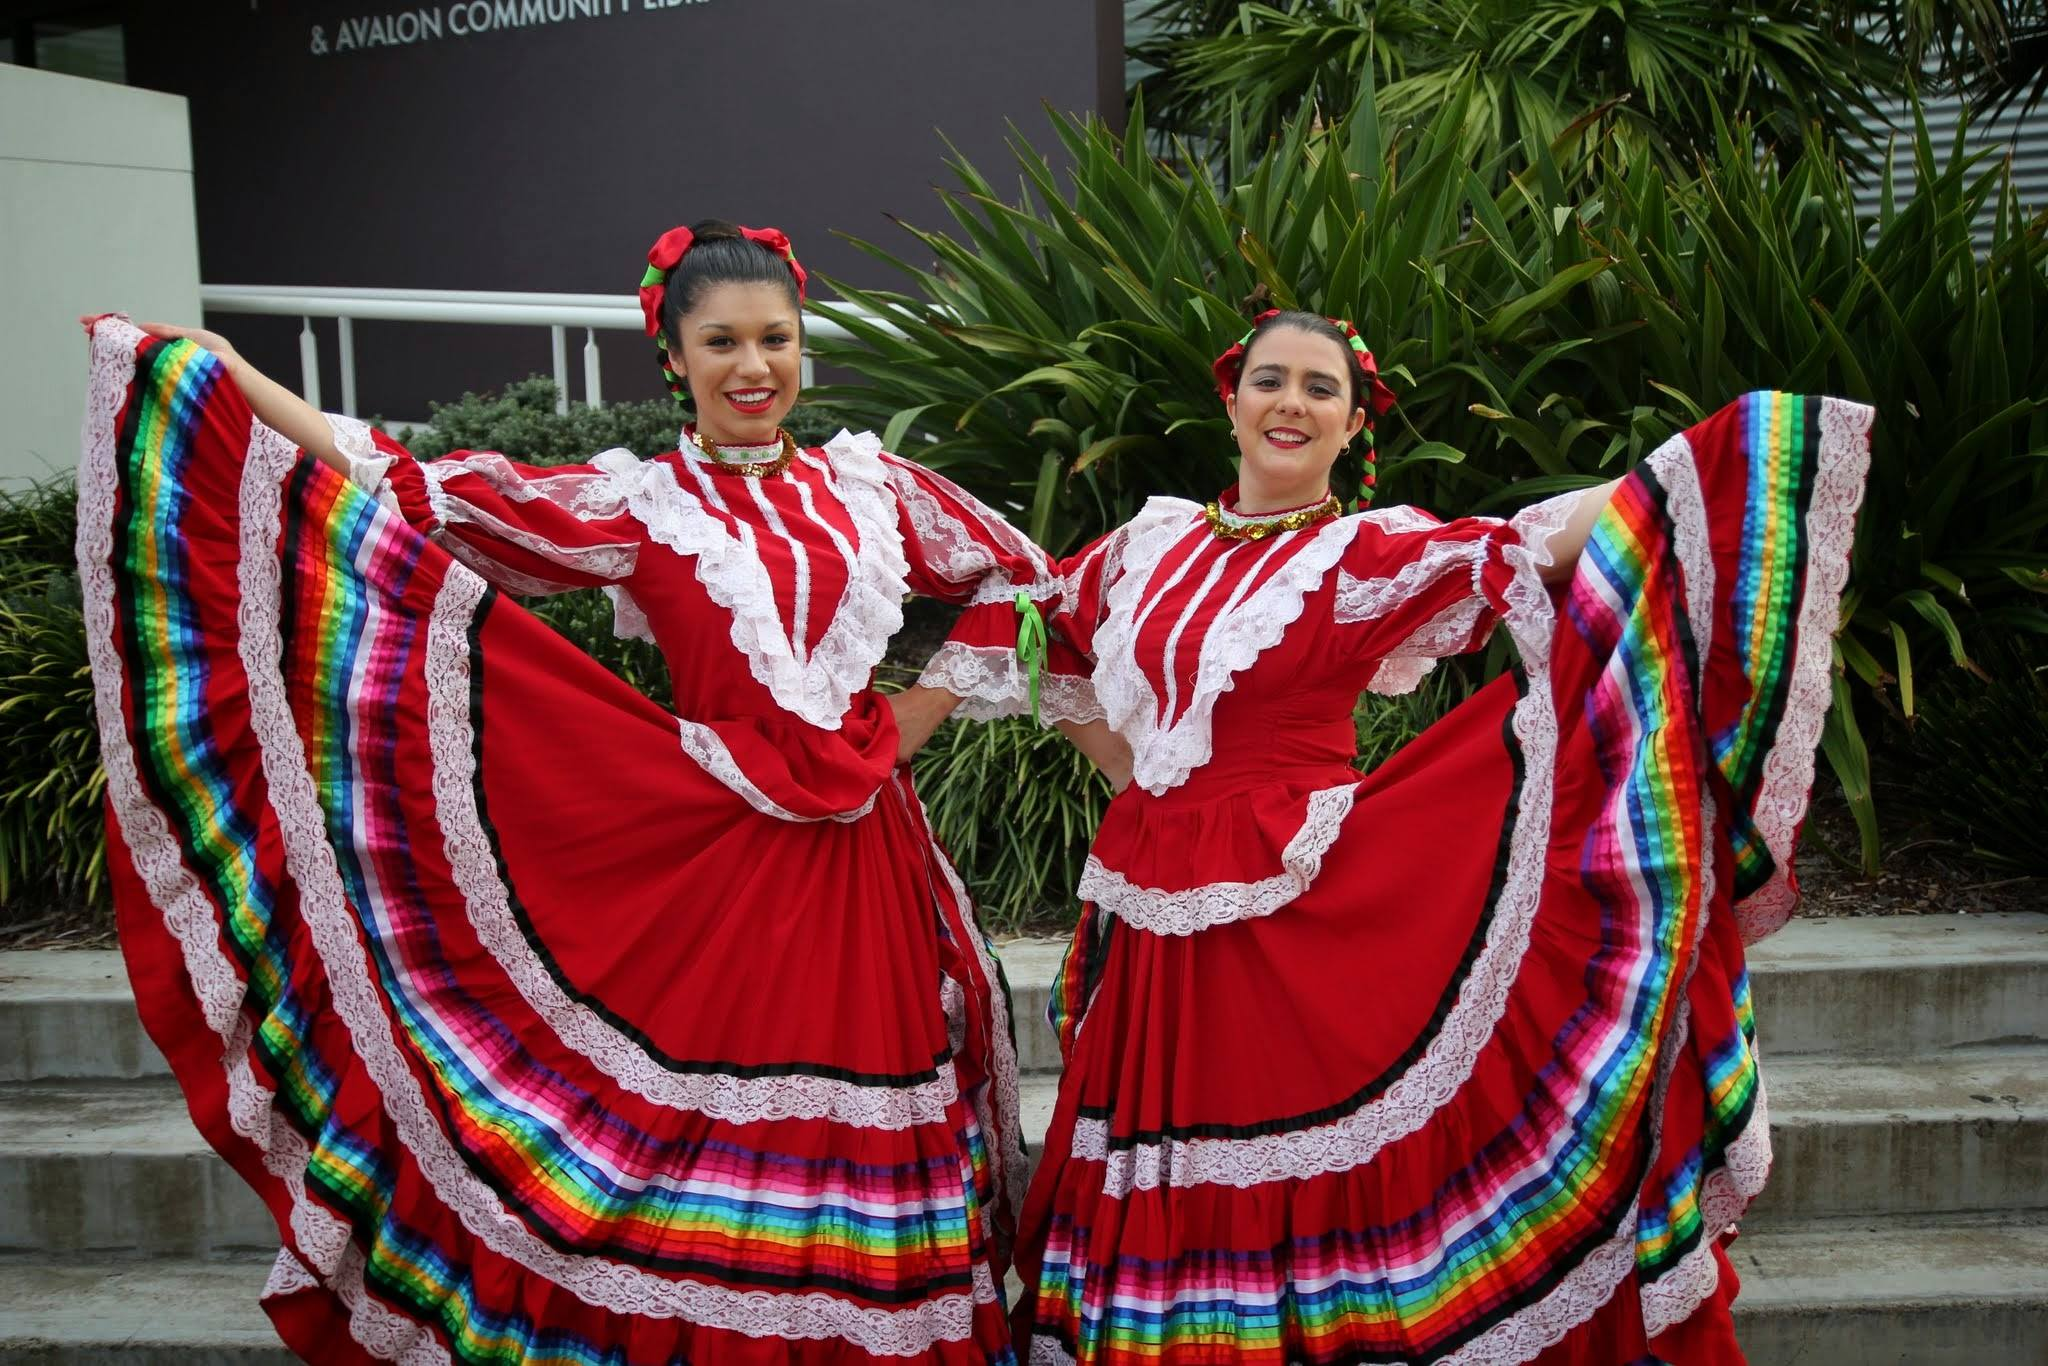 Mexican dancers available for weddings, corporate events. birthday parties and Mexican theme events. Sydney, Auctralia. http://www.talentonline.com.au/mexican-bands/mariachis-sydney-nsw.html